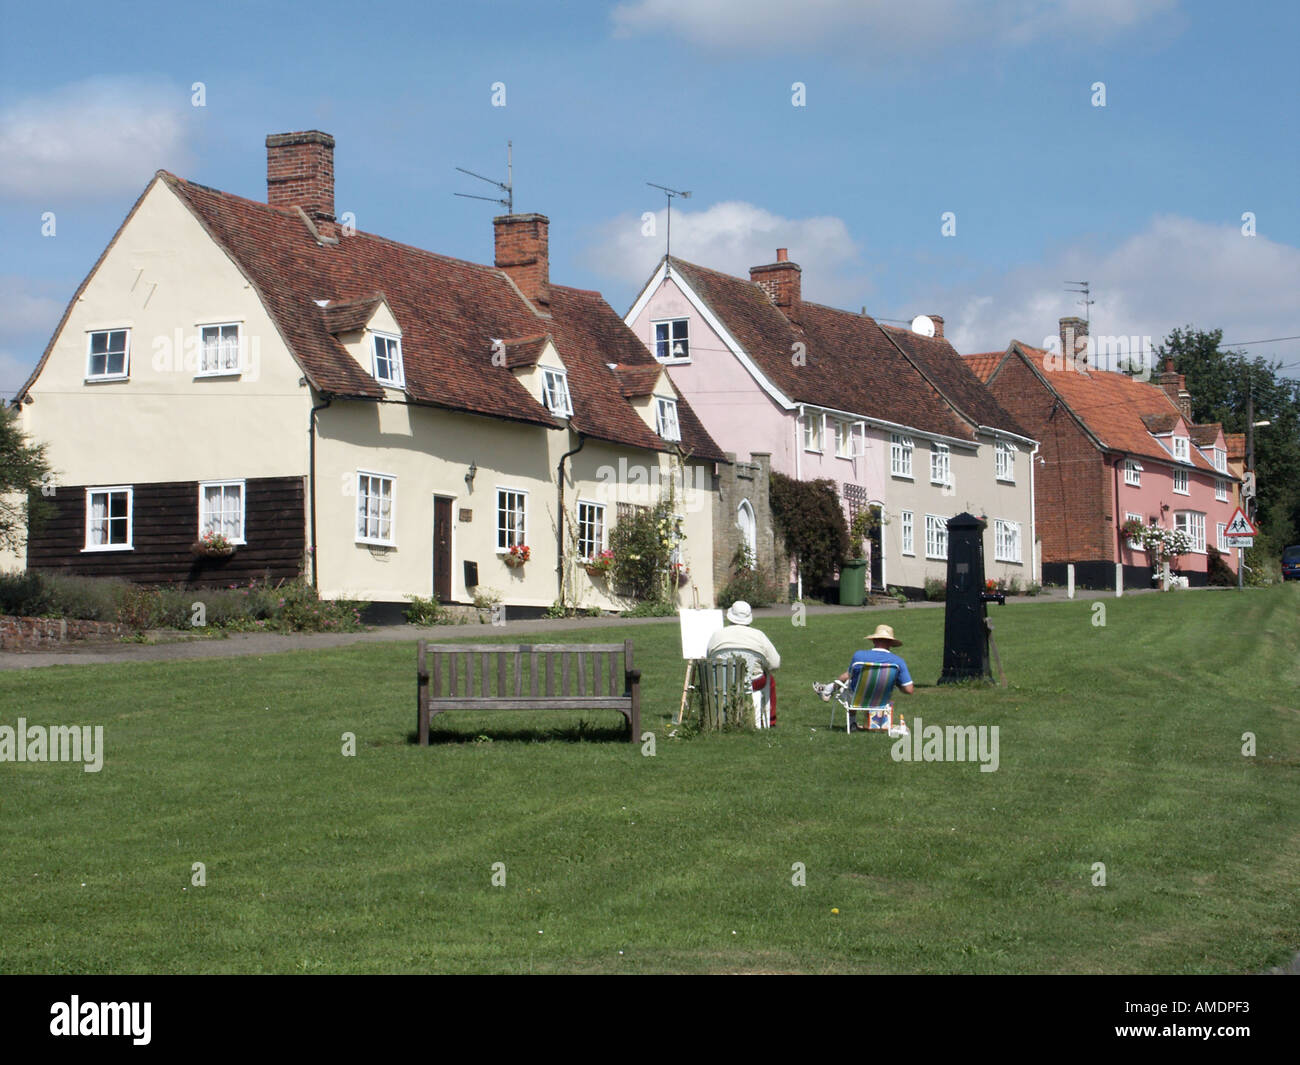 Monks Eleigh village green with cottages people relaxing including an artist - Stock Image